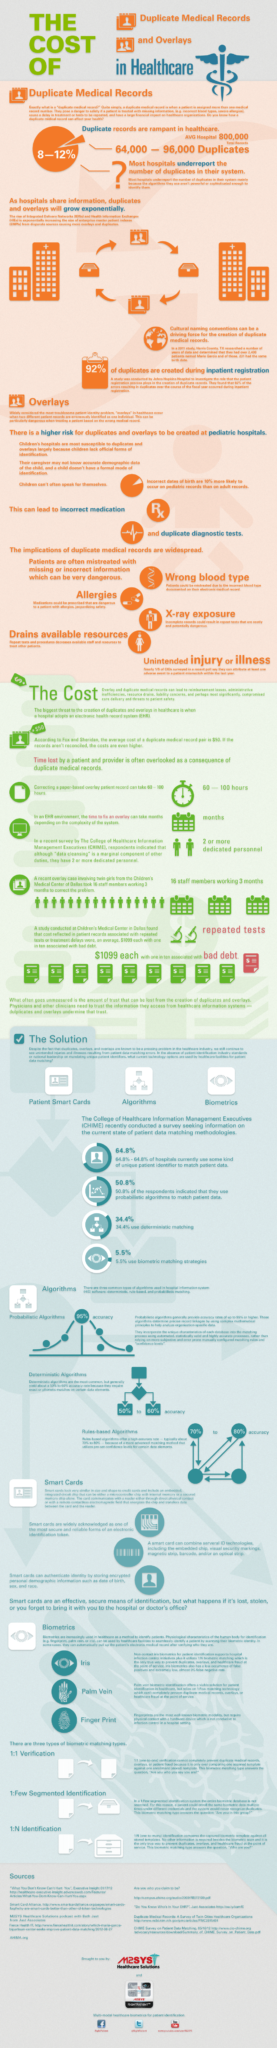 Cost of Duplicate Medical Records infographic